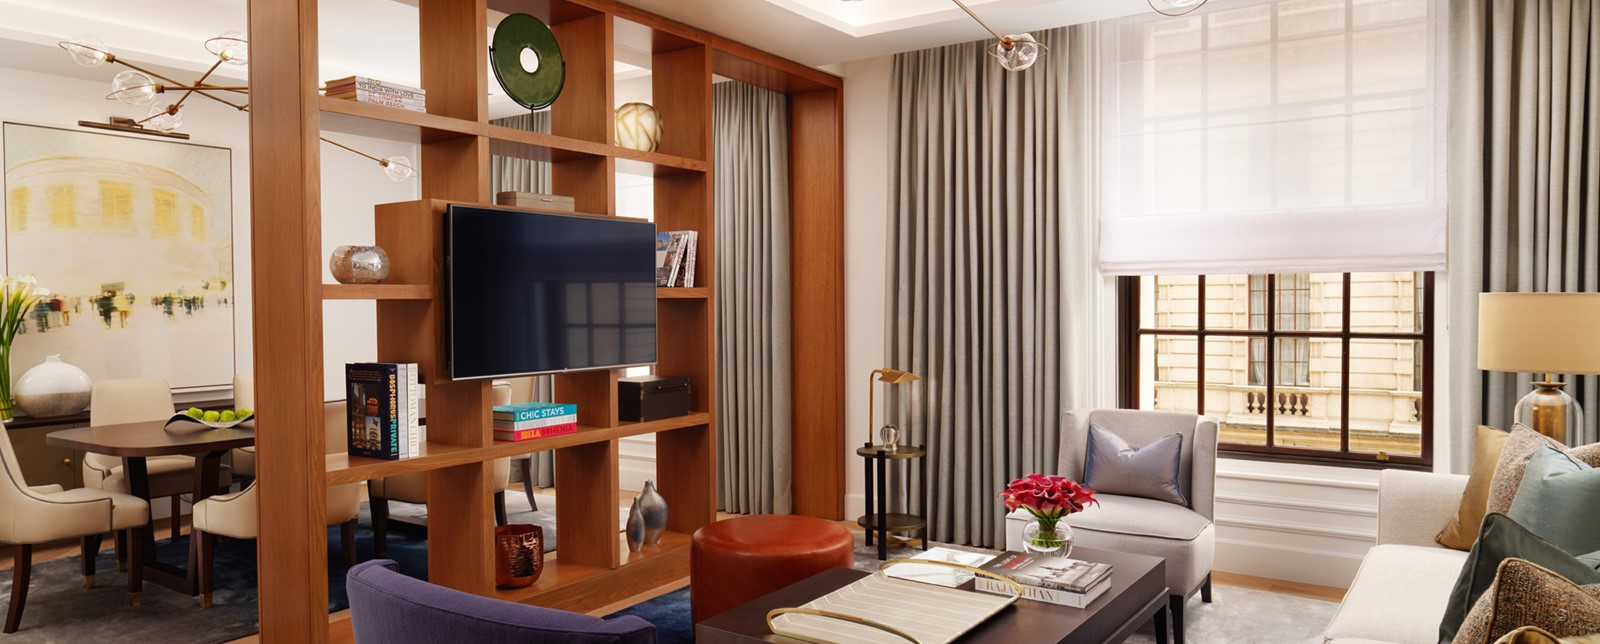 corinthia london london suite